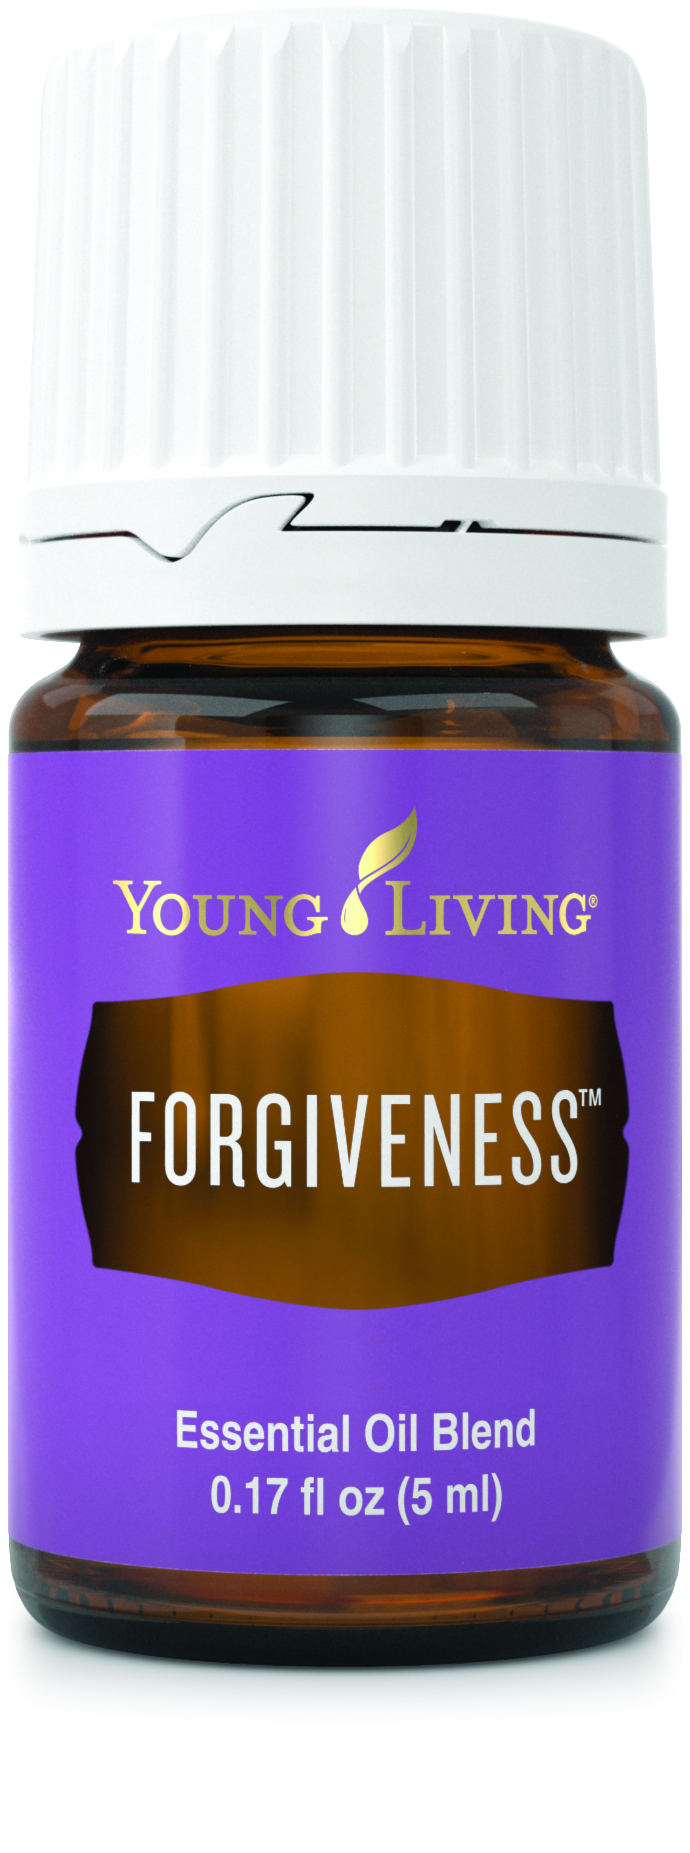 Young Living Forgiveness Essential Oil blend